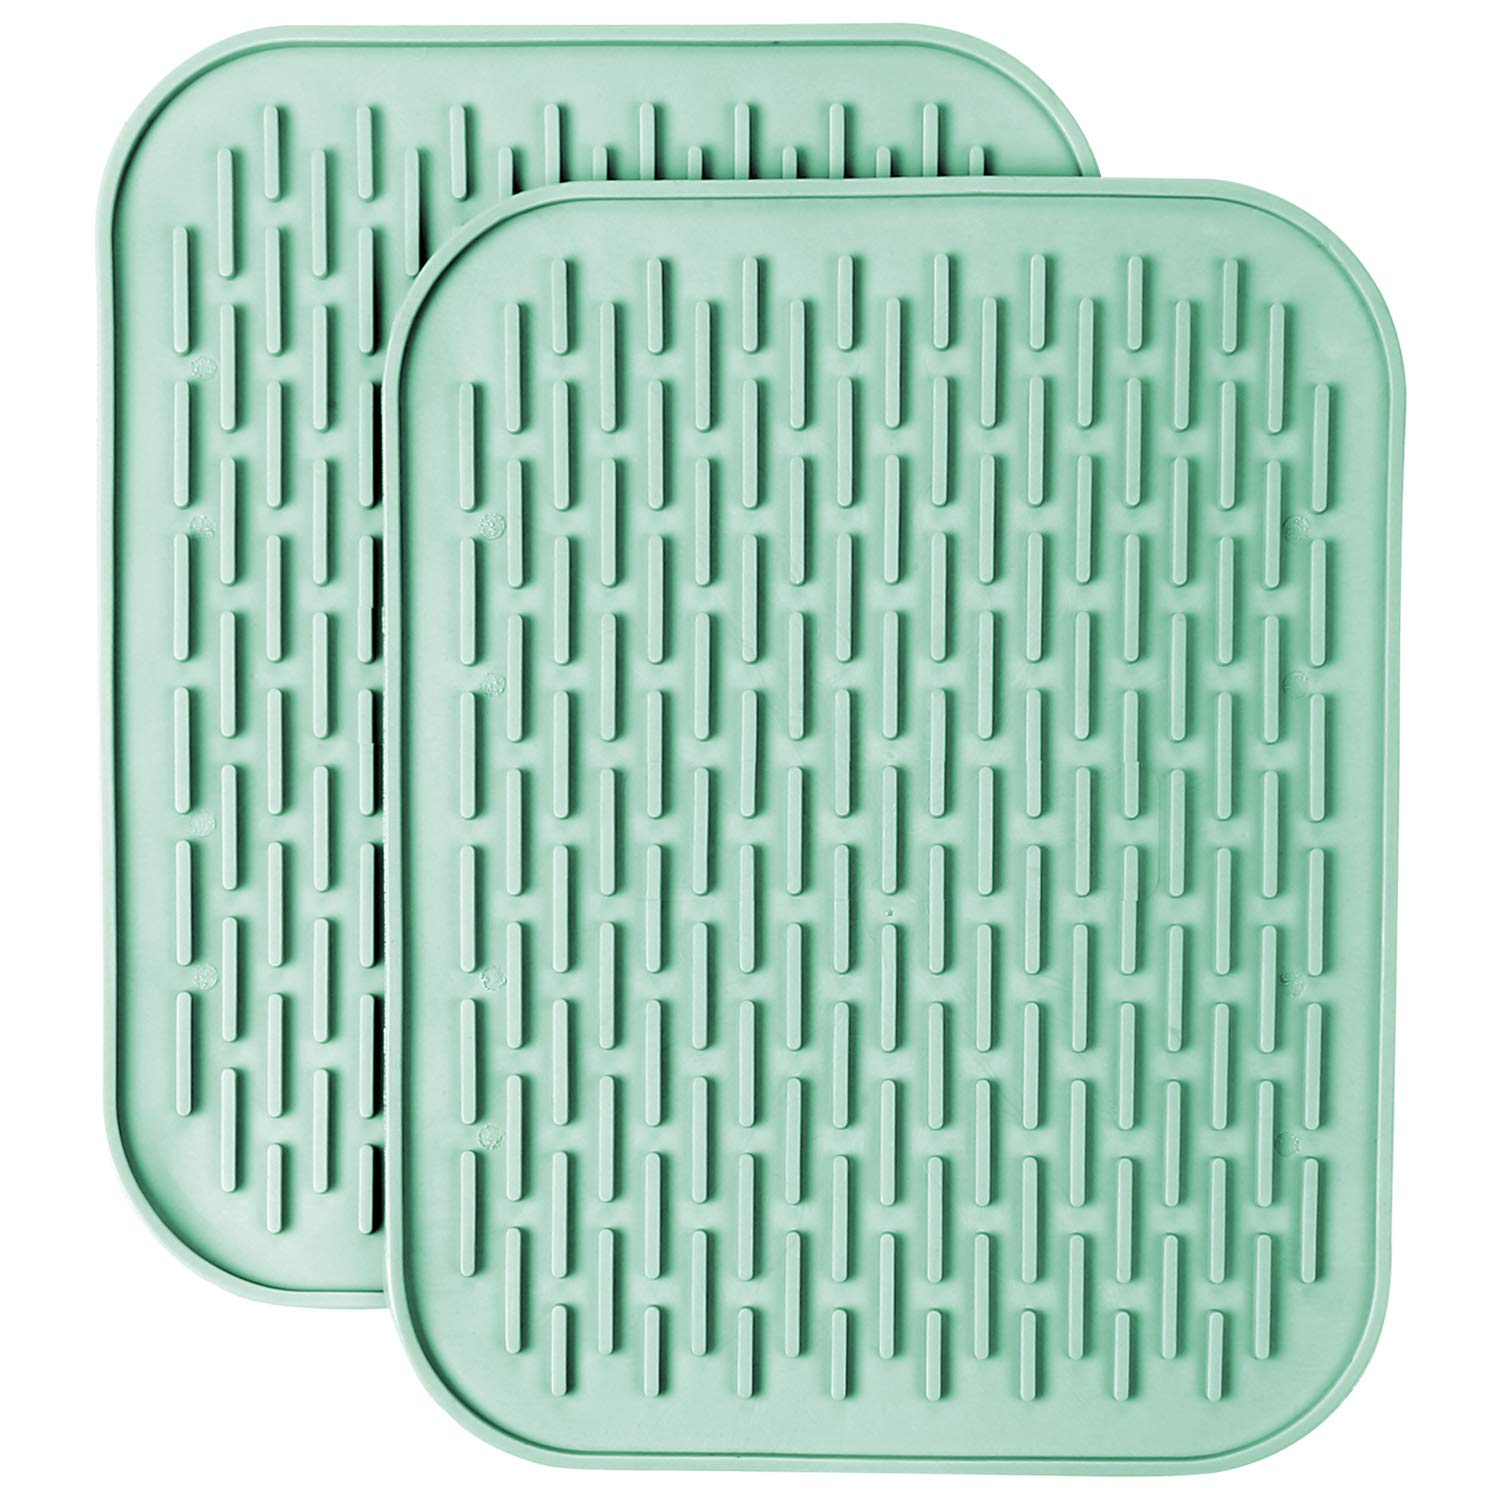 """Getfitsoo Pack of 2 Large Silicone Pot Holder Set 11.8"""" x 8.7"""", Heat Resistant Kitchen Tray Table Place Mat, Non-Slip Soft Flexible Silicone Trivets Coaster Hot Pads Drying Mat Draining Board (Grey)"""